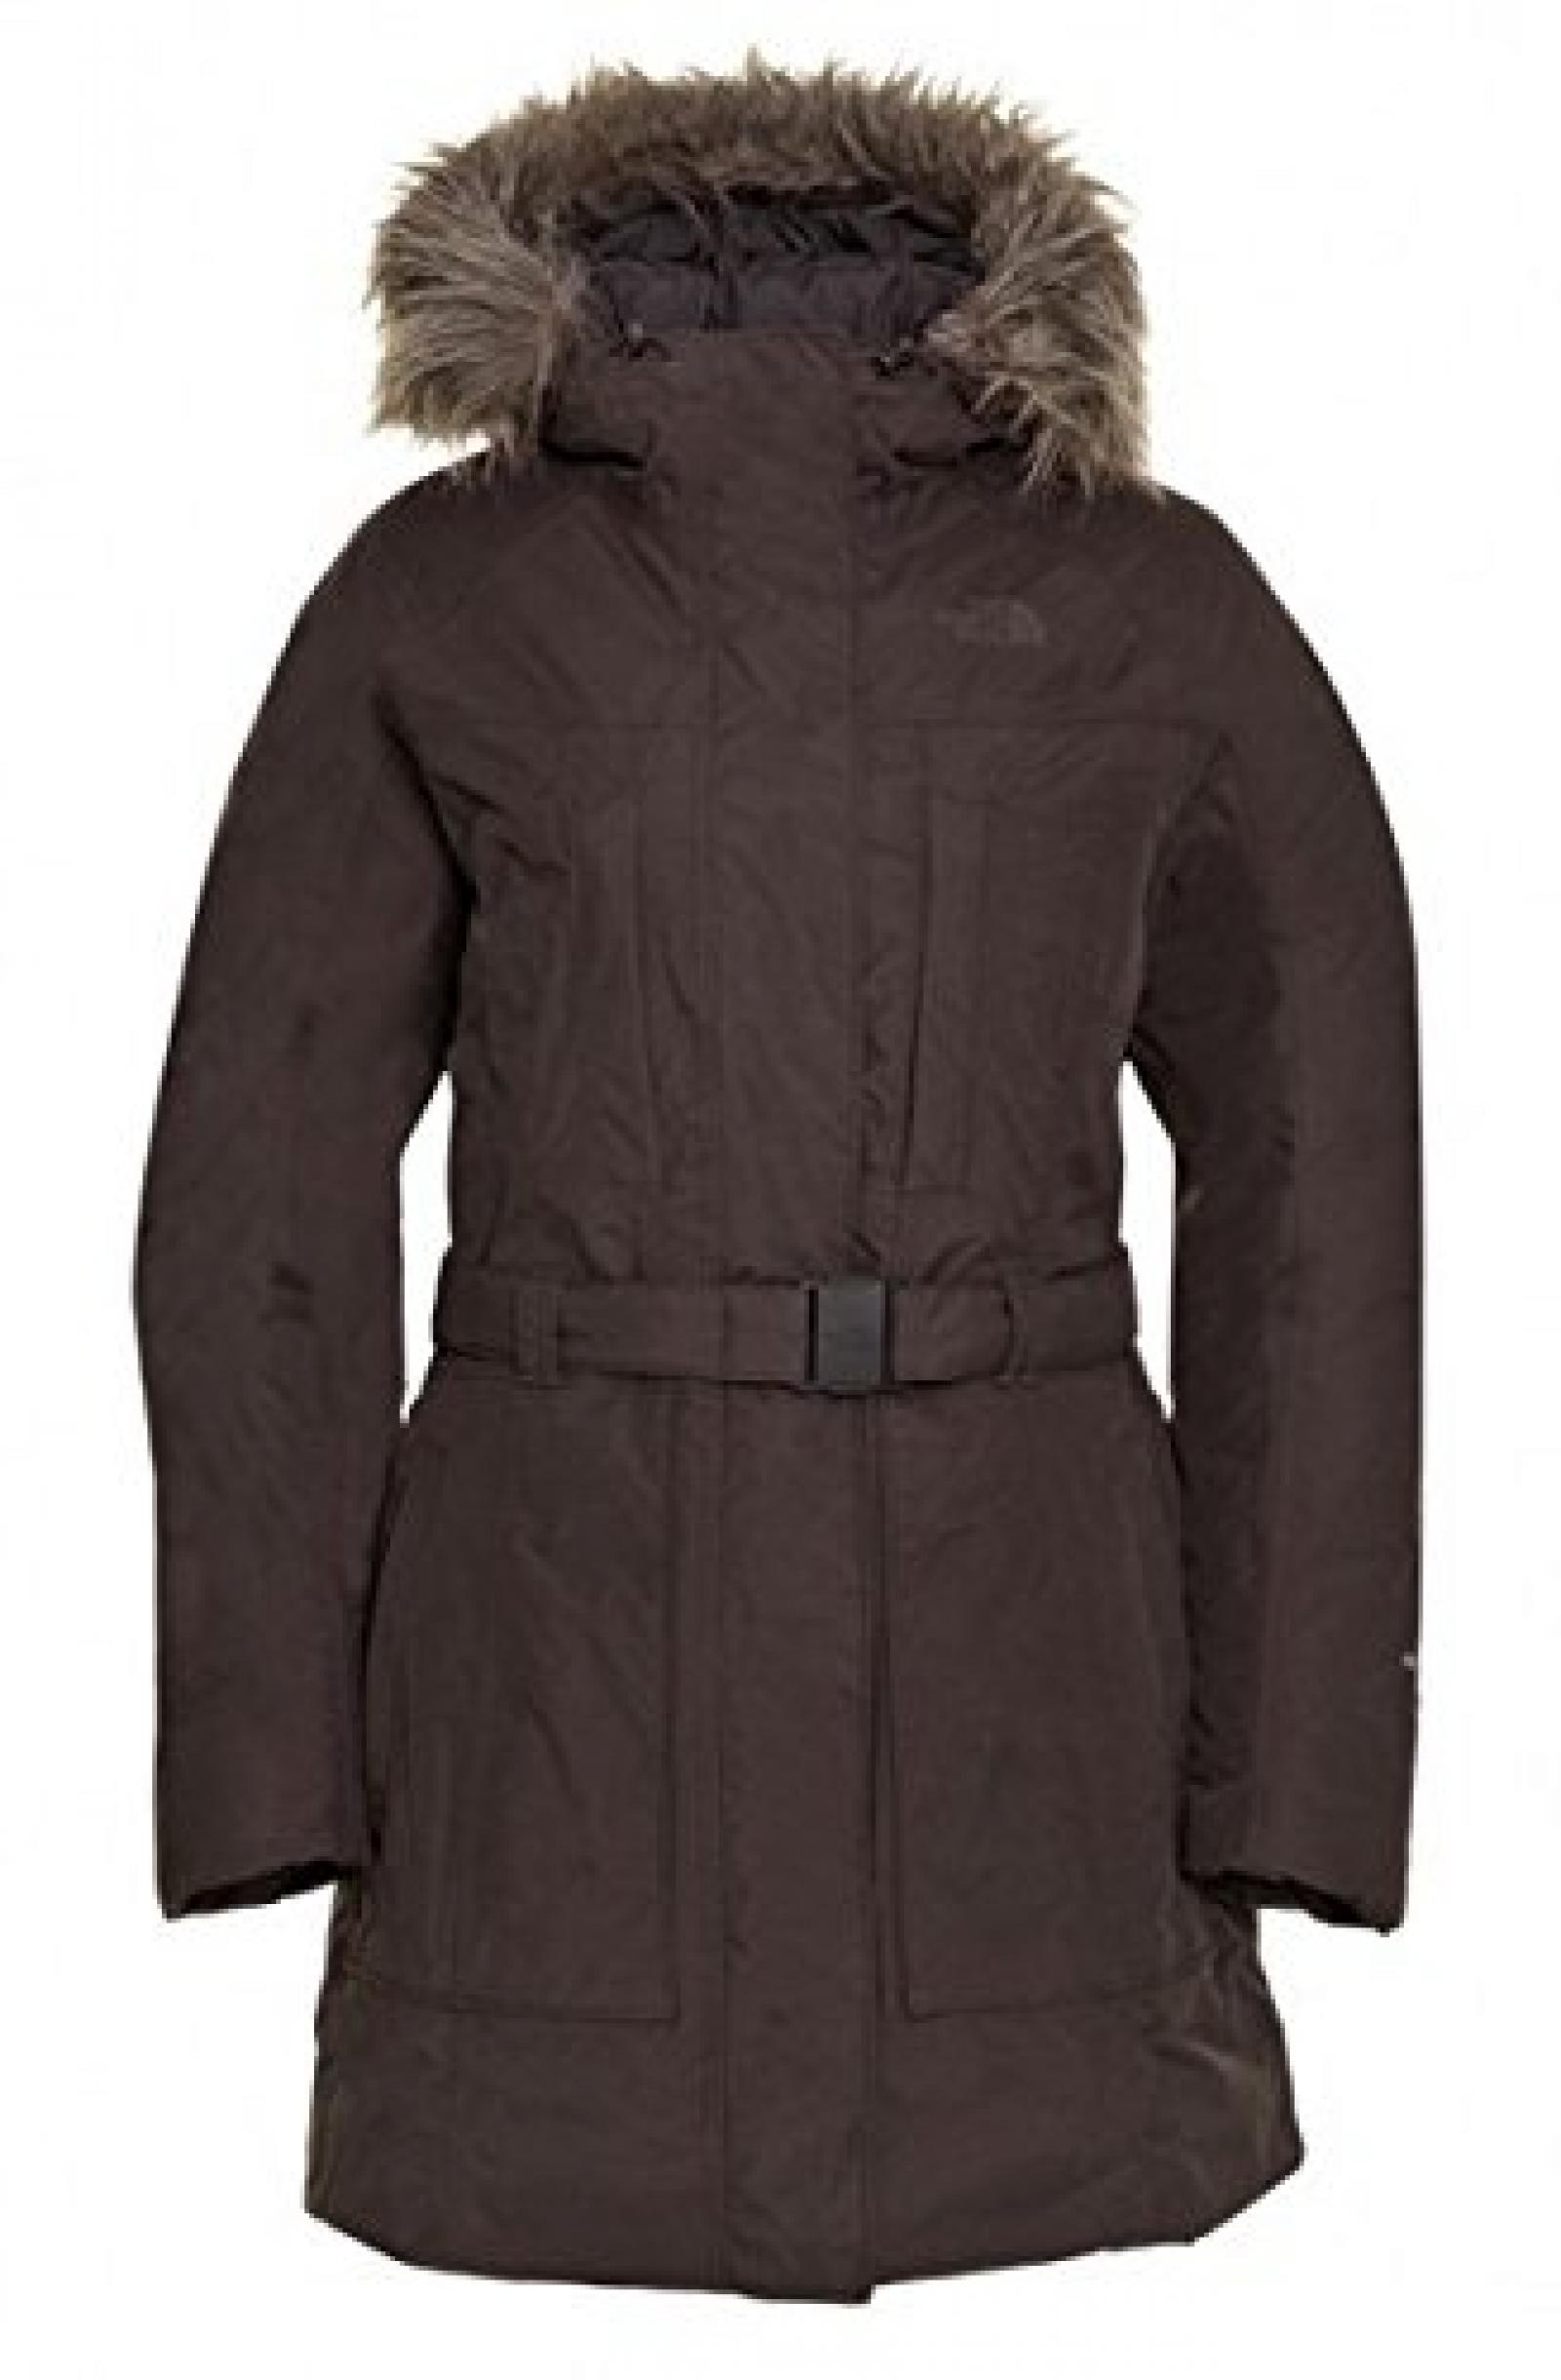 The North Face Womens Brooklyn Jacket bittersweet brown